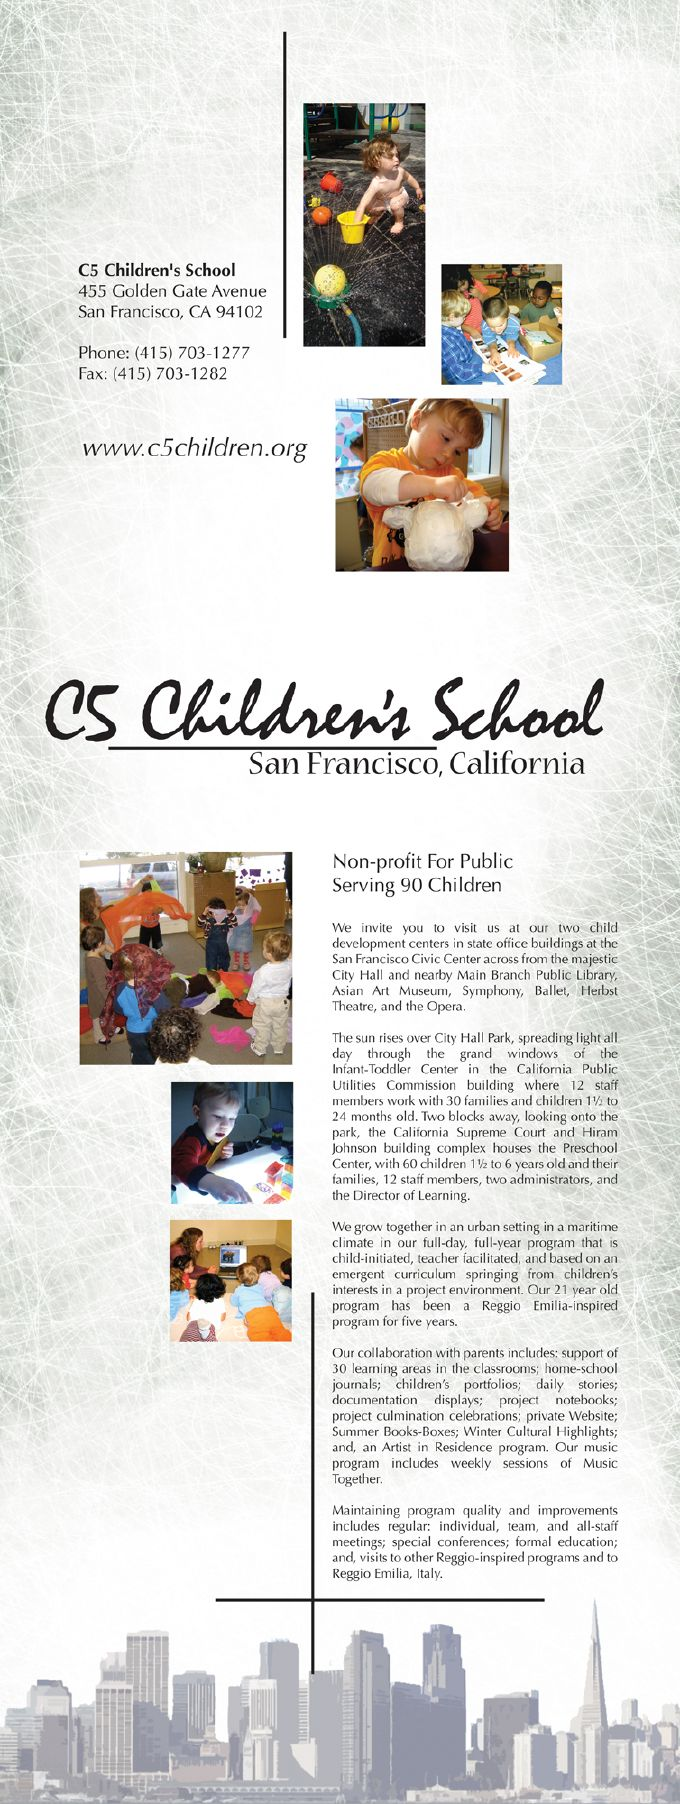 C5 Children's School